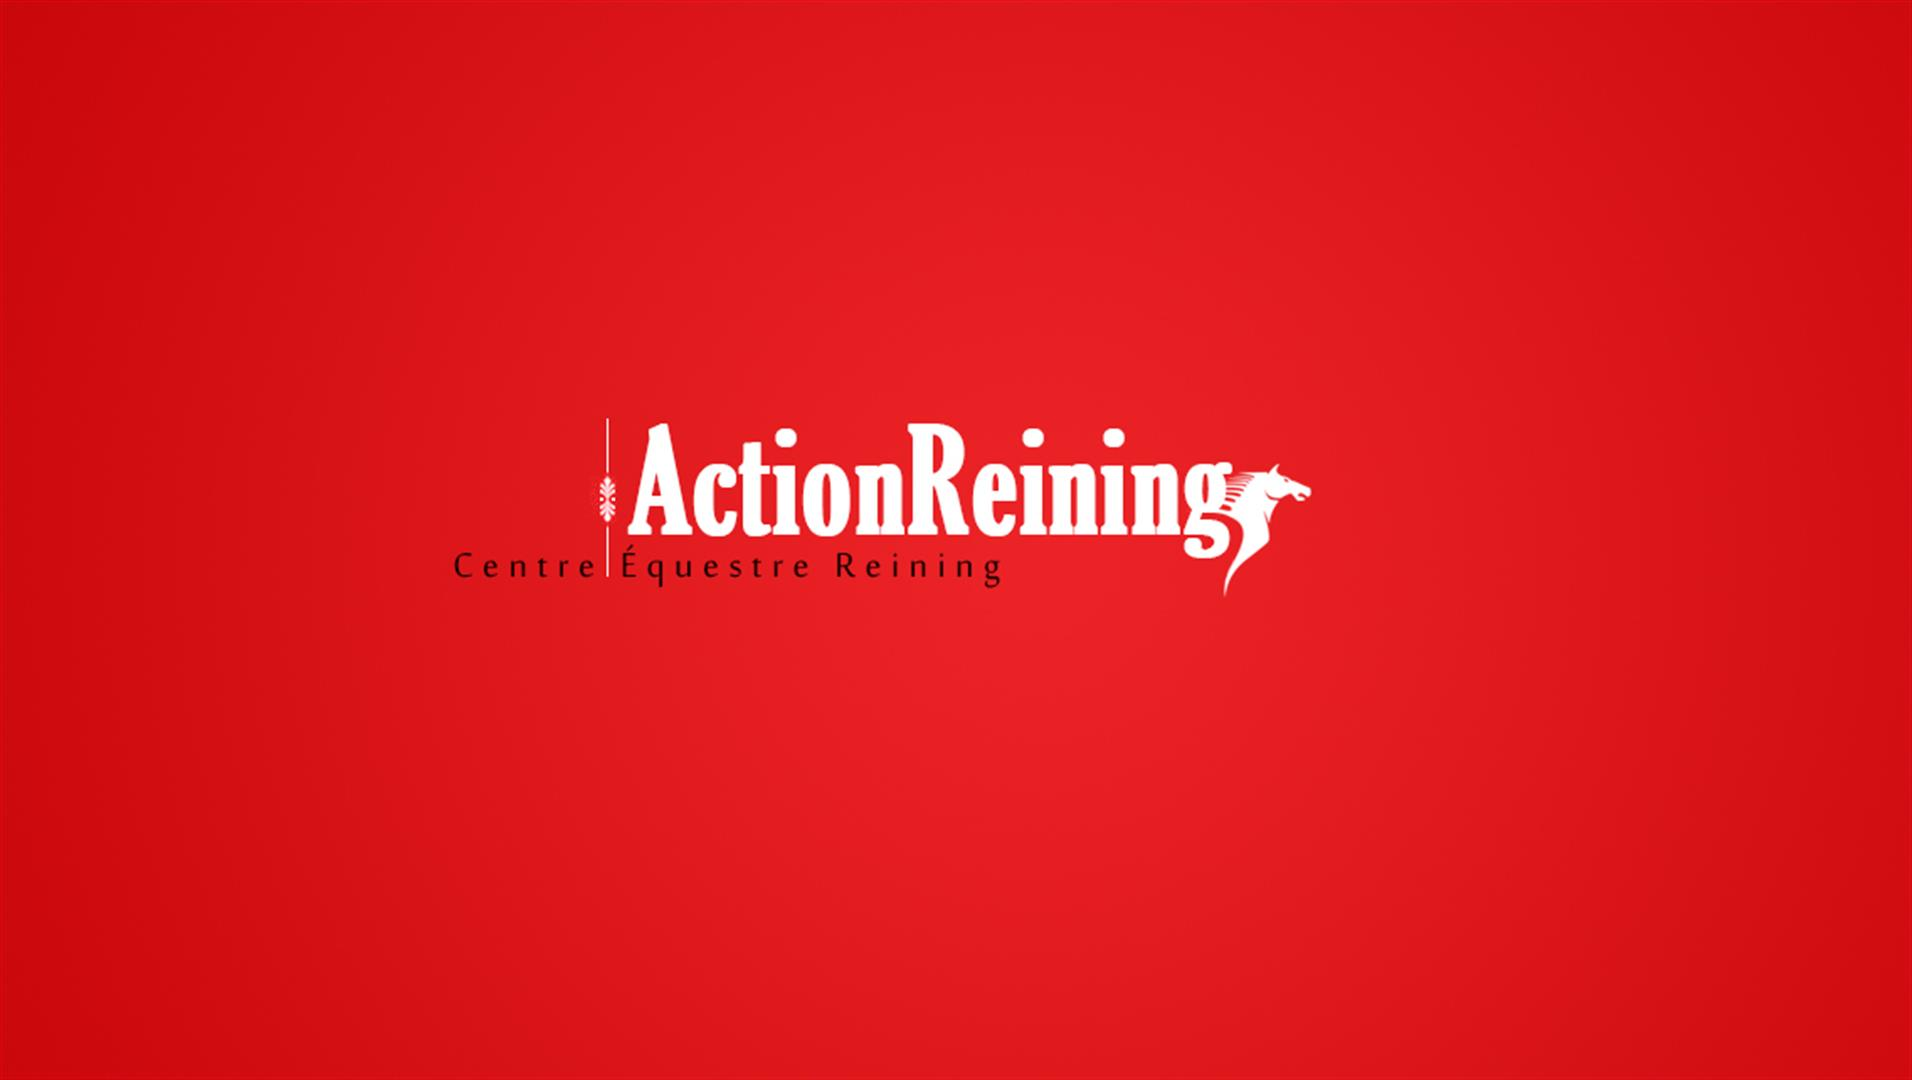 5 action reining logotype creation logo